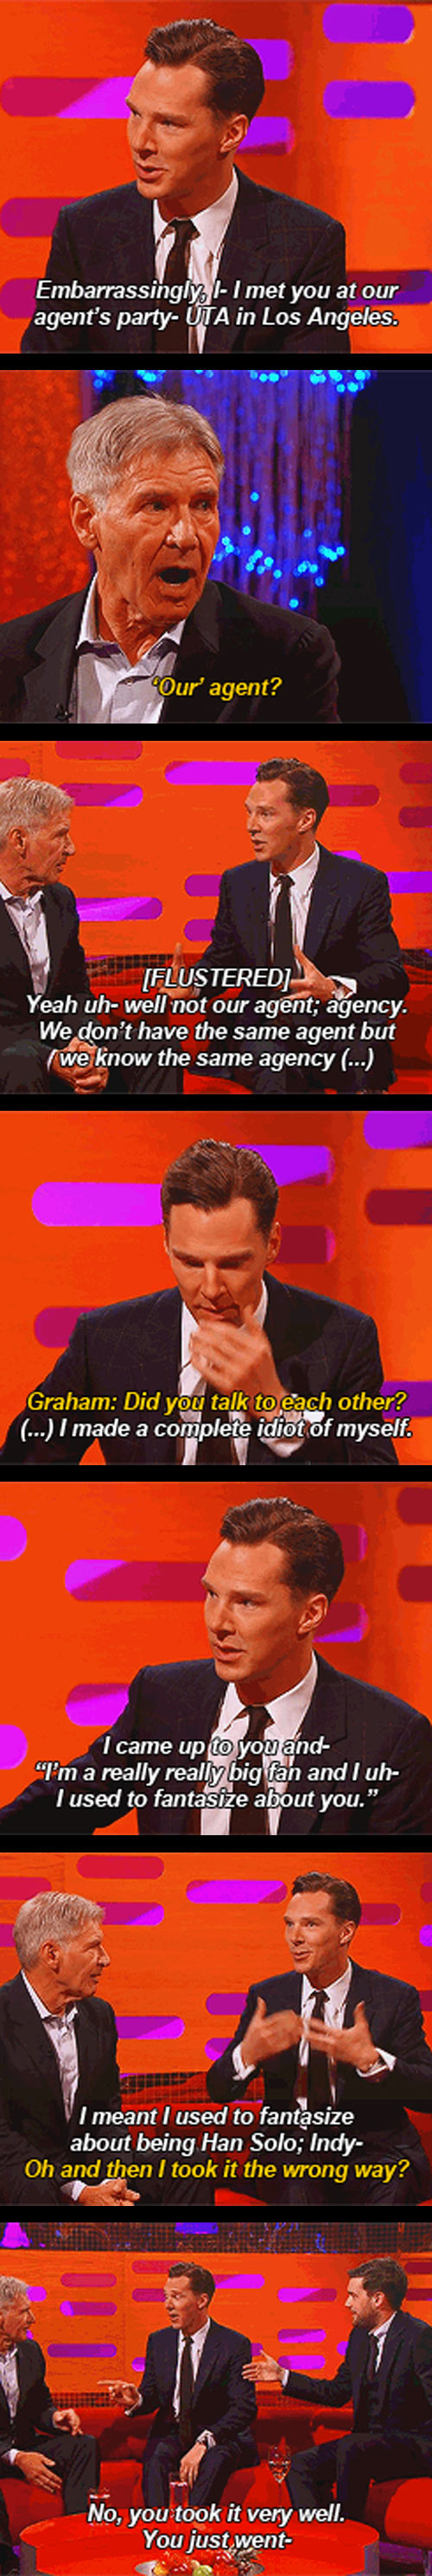 funny-Benedict-Harrison-laughing-together